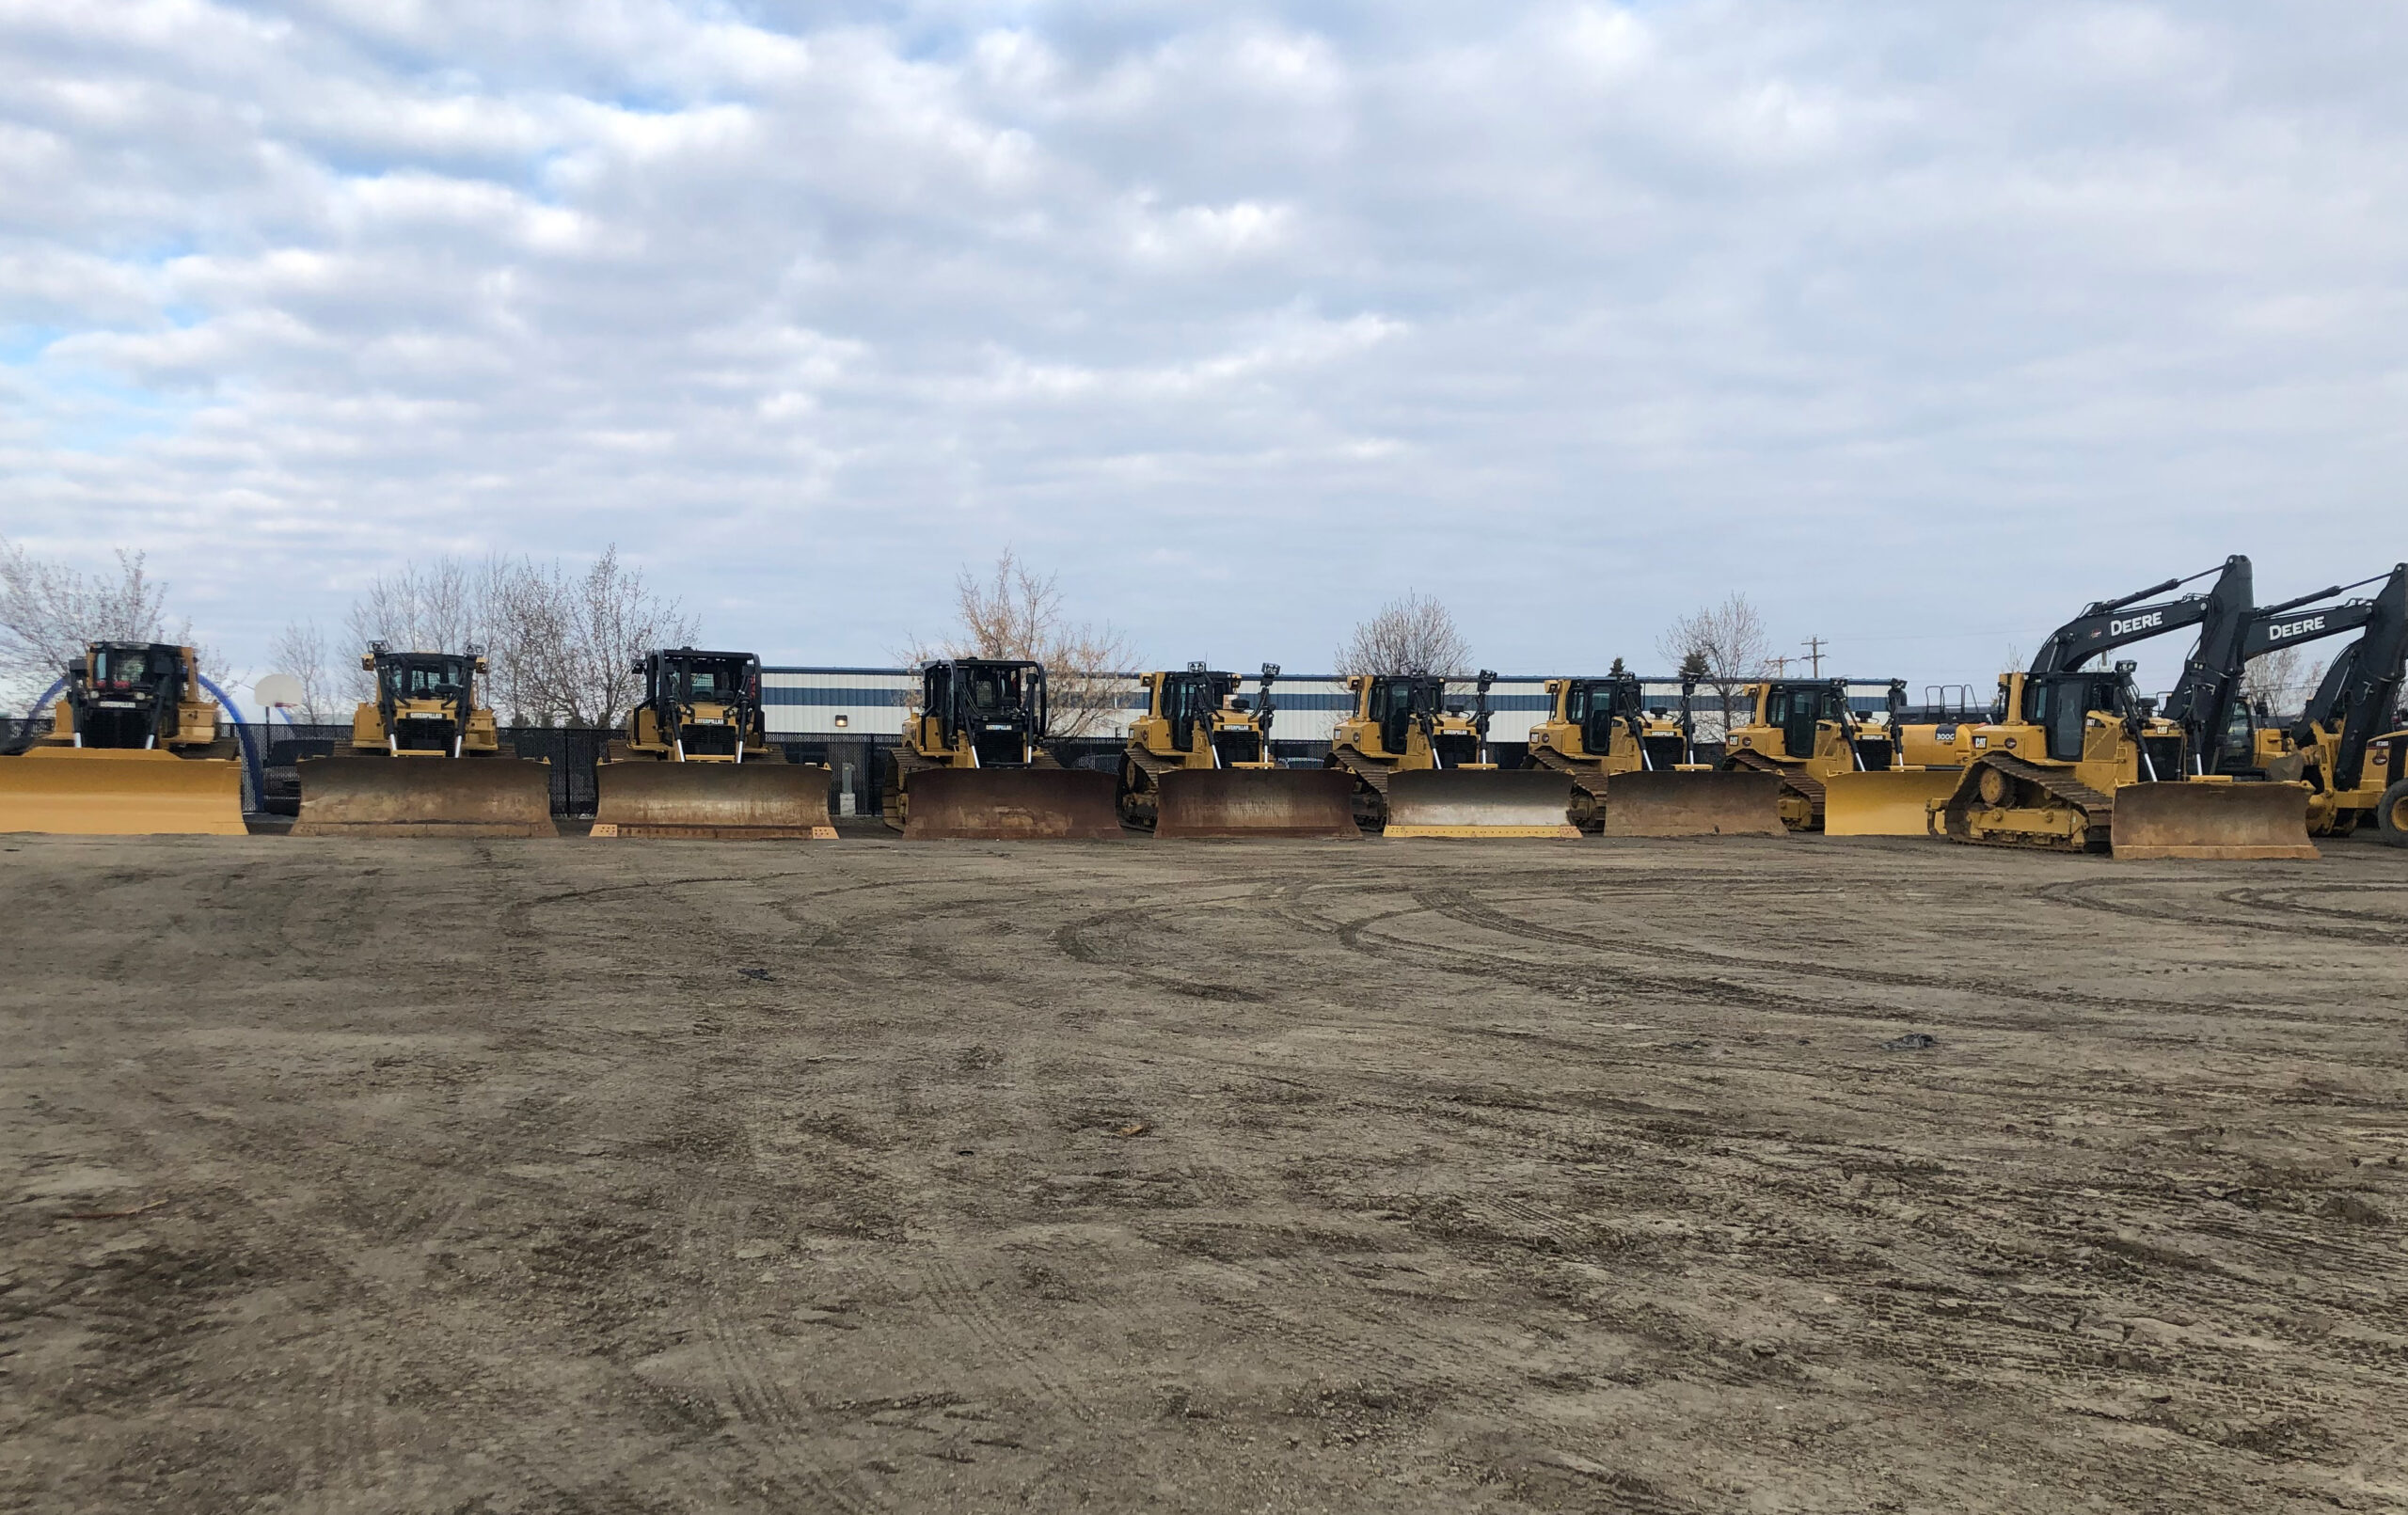 line-up-of-rental-equipment-for-Yellow-Iron-Worx